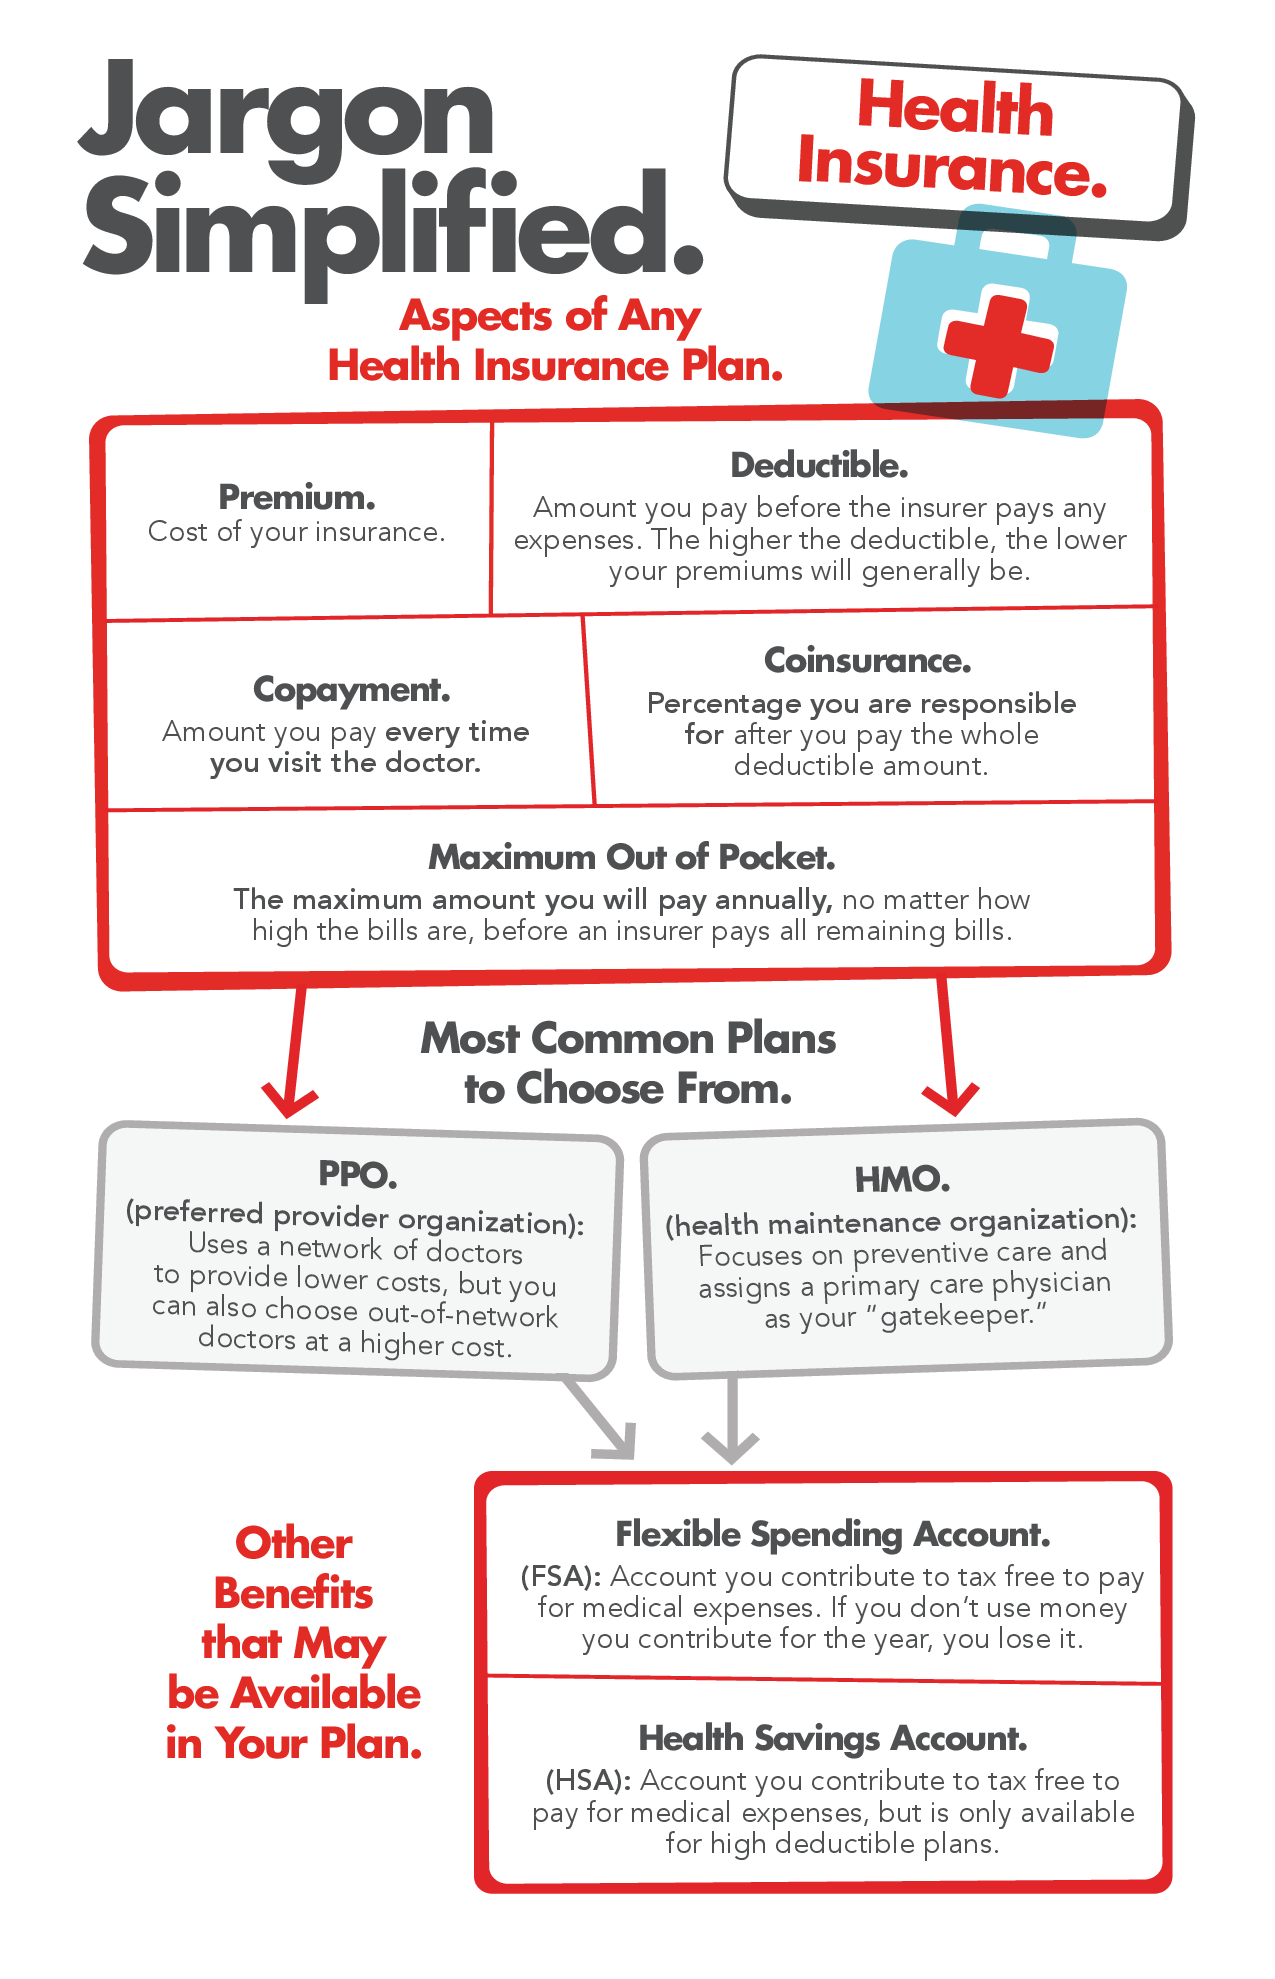 Jargon Simplified: Health Insurance